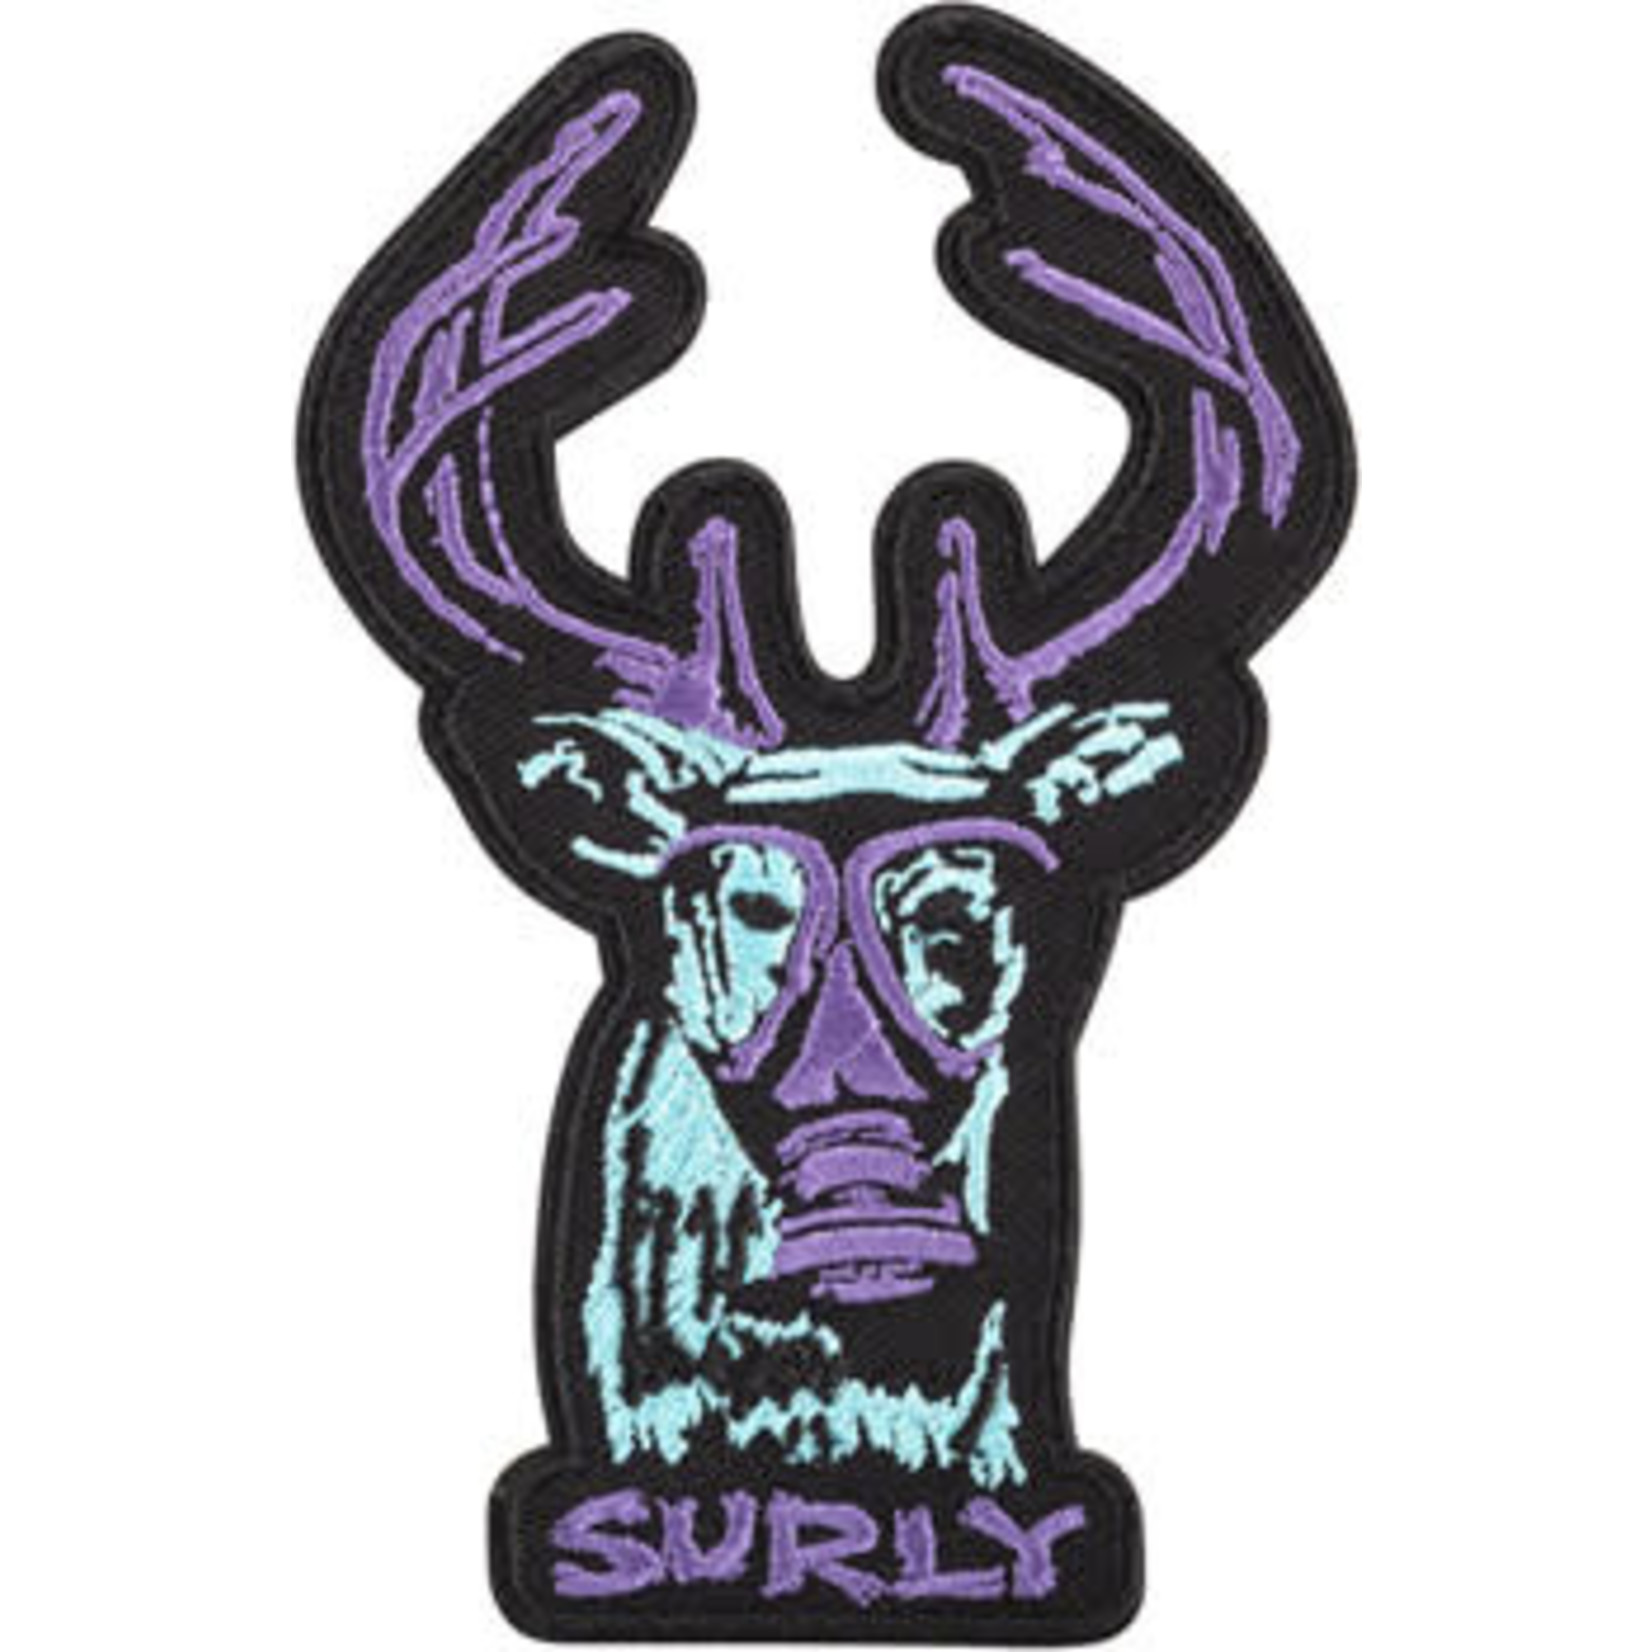 Surly Surly Oh Deer Patch - Black, Blue, Purple, One Size